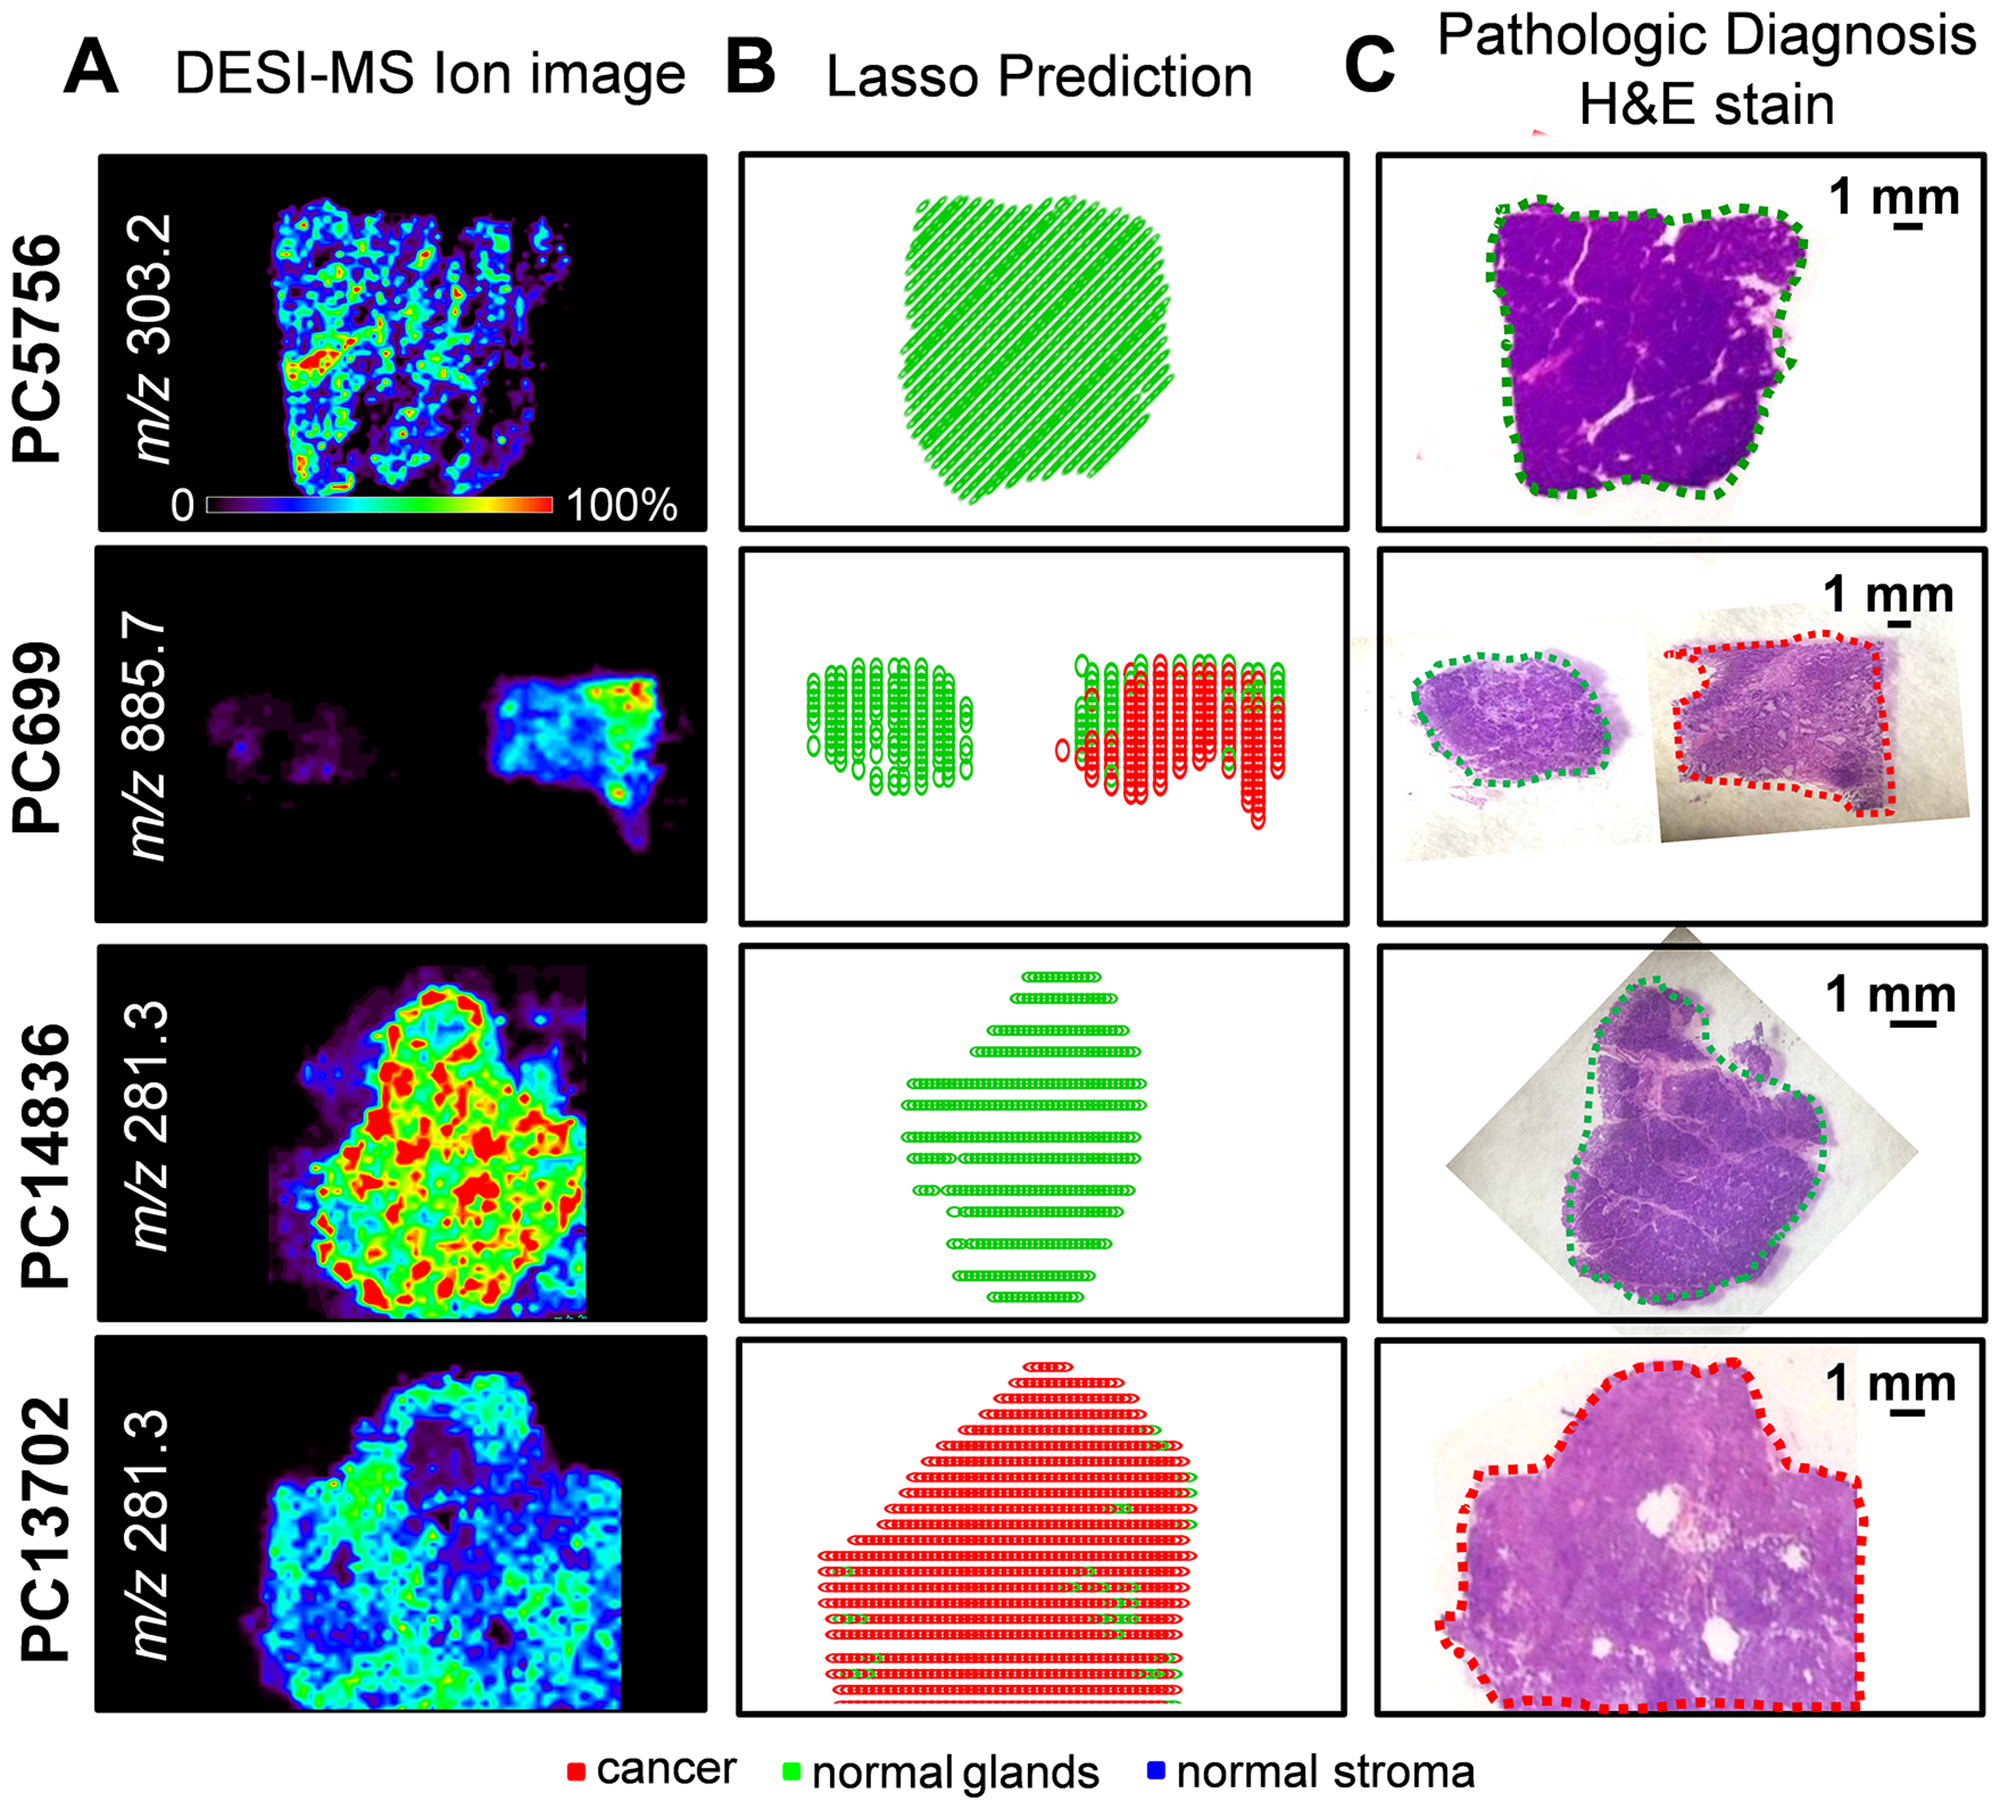 Selected DESI-MSI ion image and Lasso prediction results obtained for training samples PC5756 and PC699 and validation samples PC14836 and PC13702.